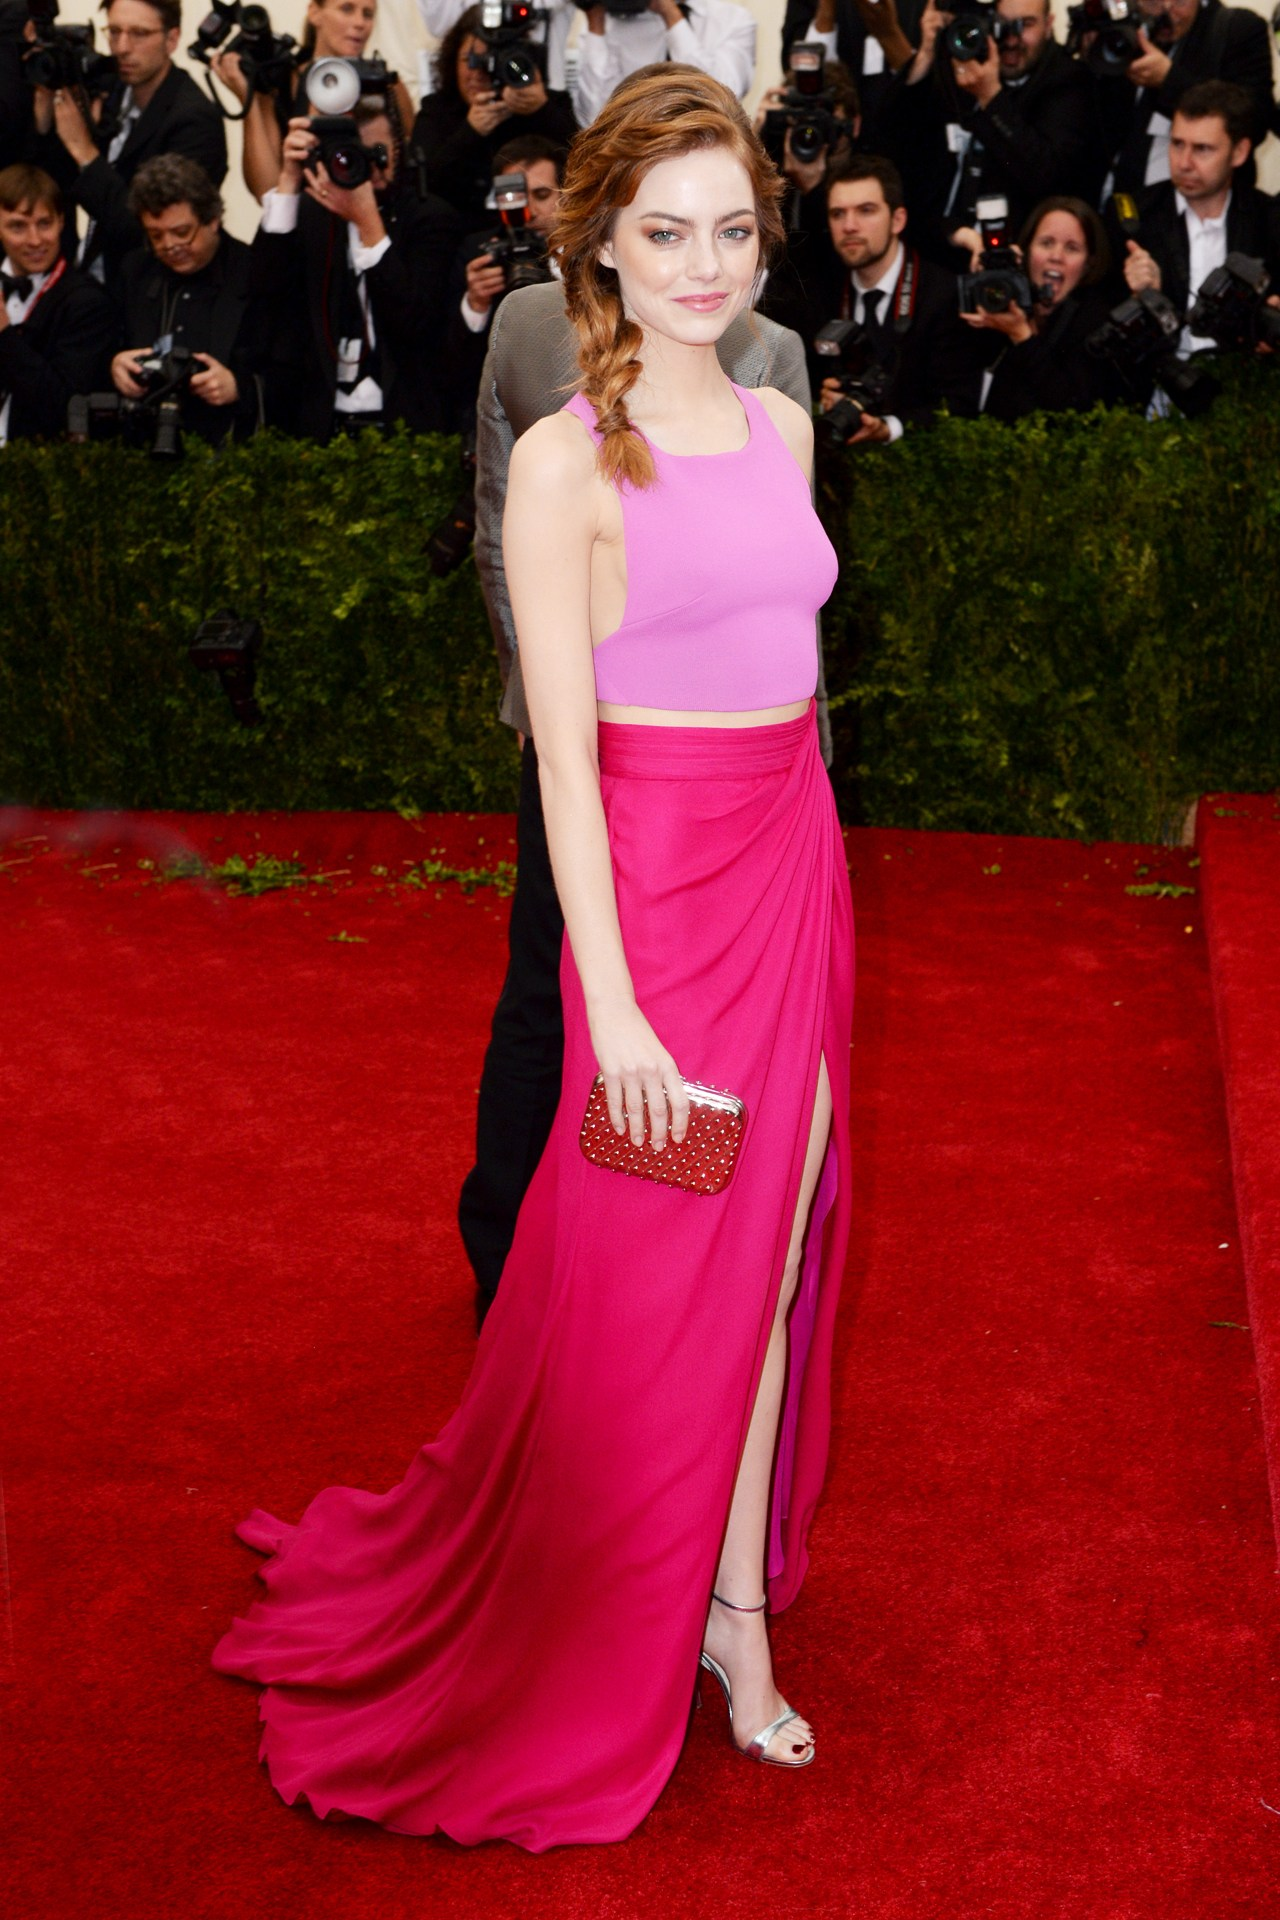 Emma Stone wore a custom-made top and skirt by Thakoon